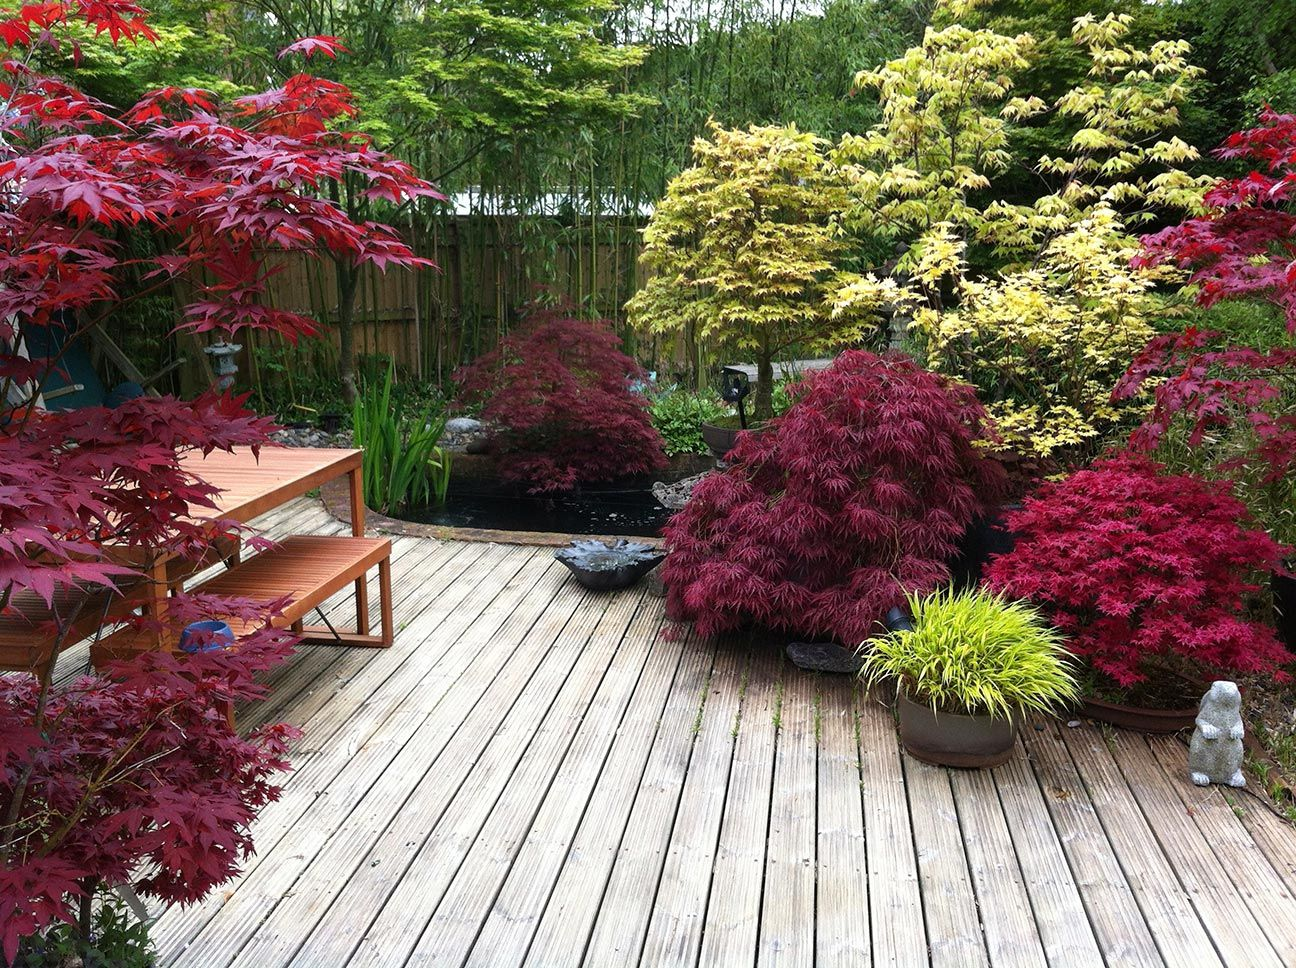 Japanese Maples Add Such Vibrant Colors And Unique Shapes To Any